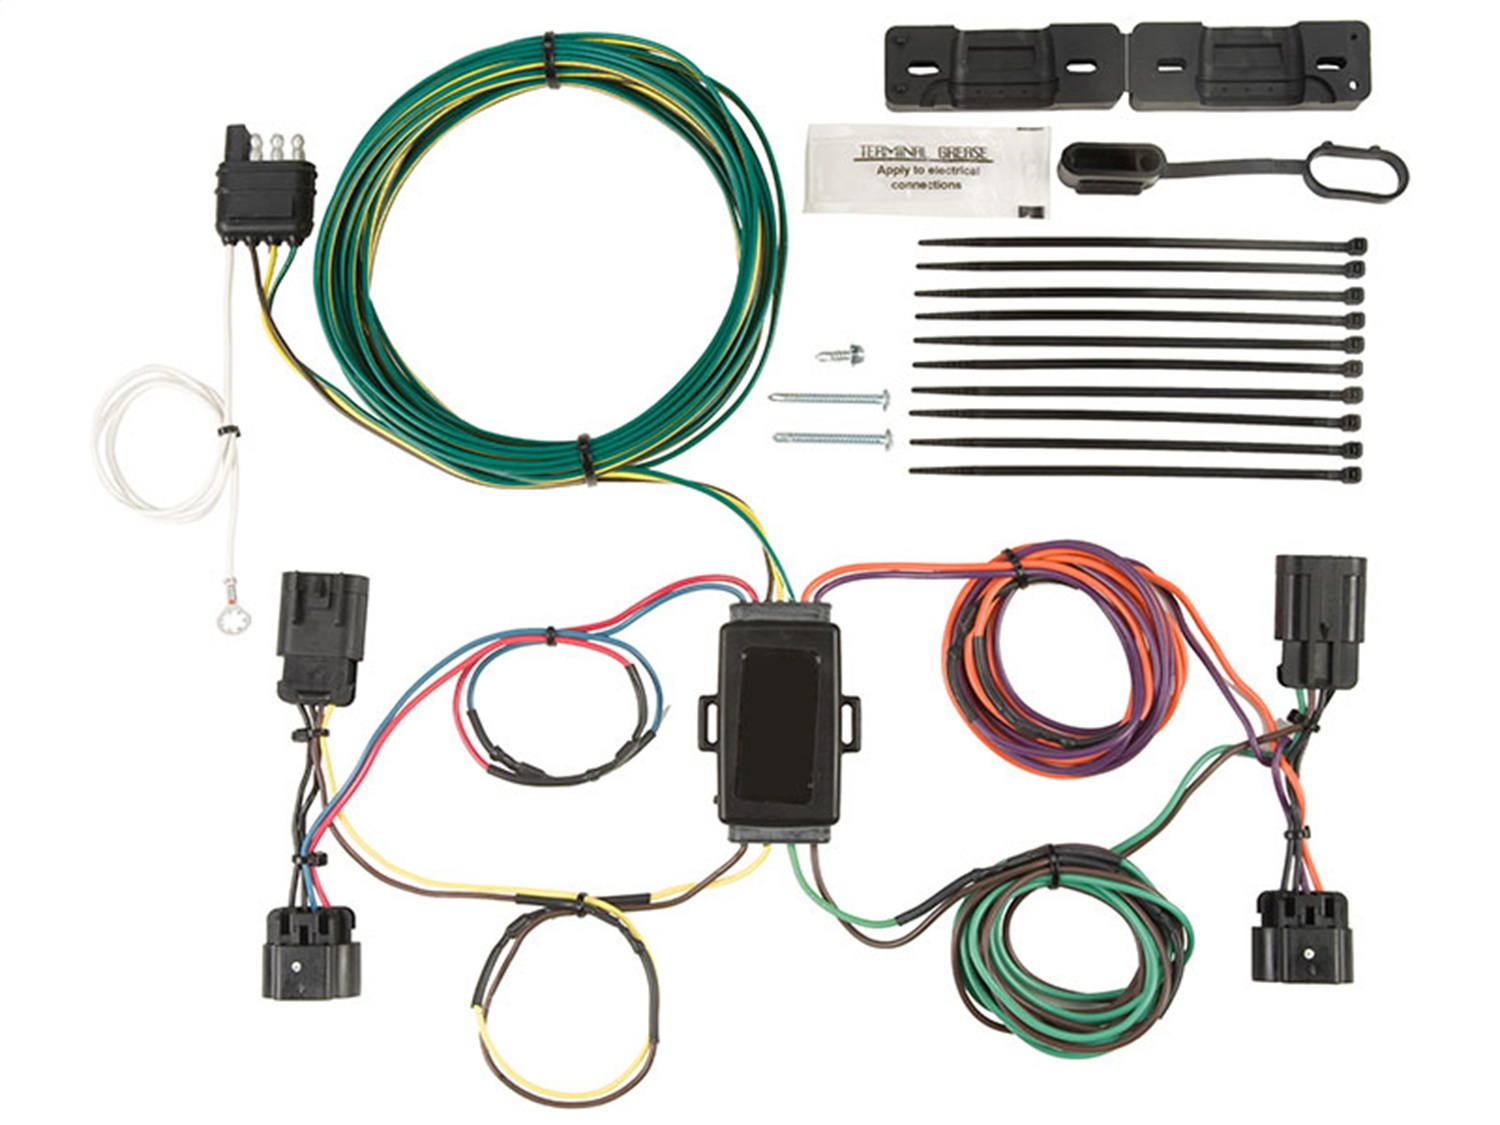 ox bx88276 ez light wiring harness kit trailer wire installation kitblue ox electronics walmart com rh walmart com